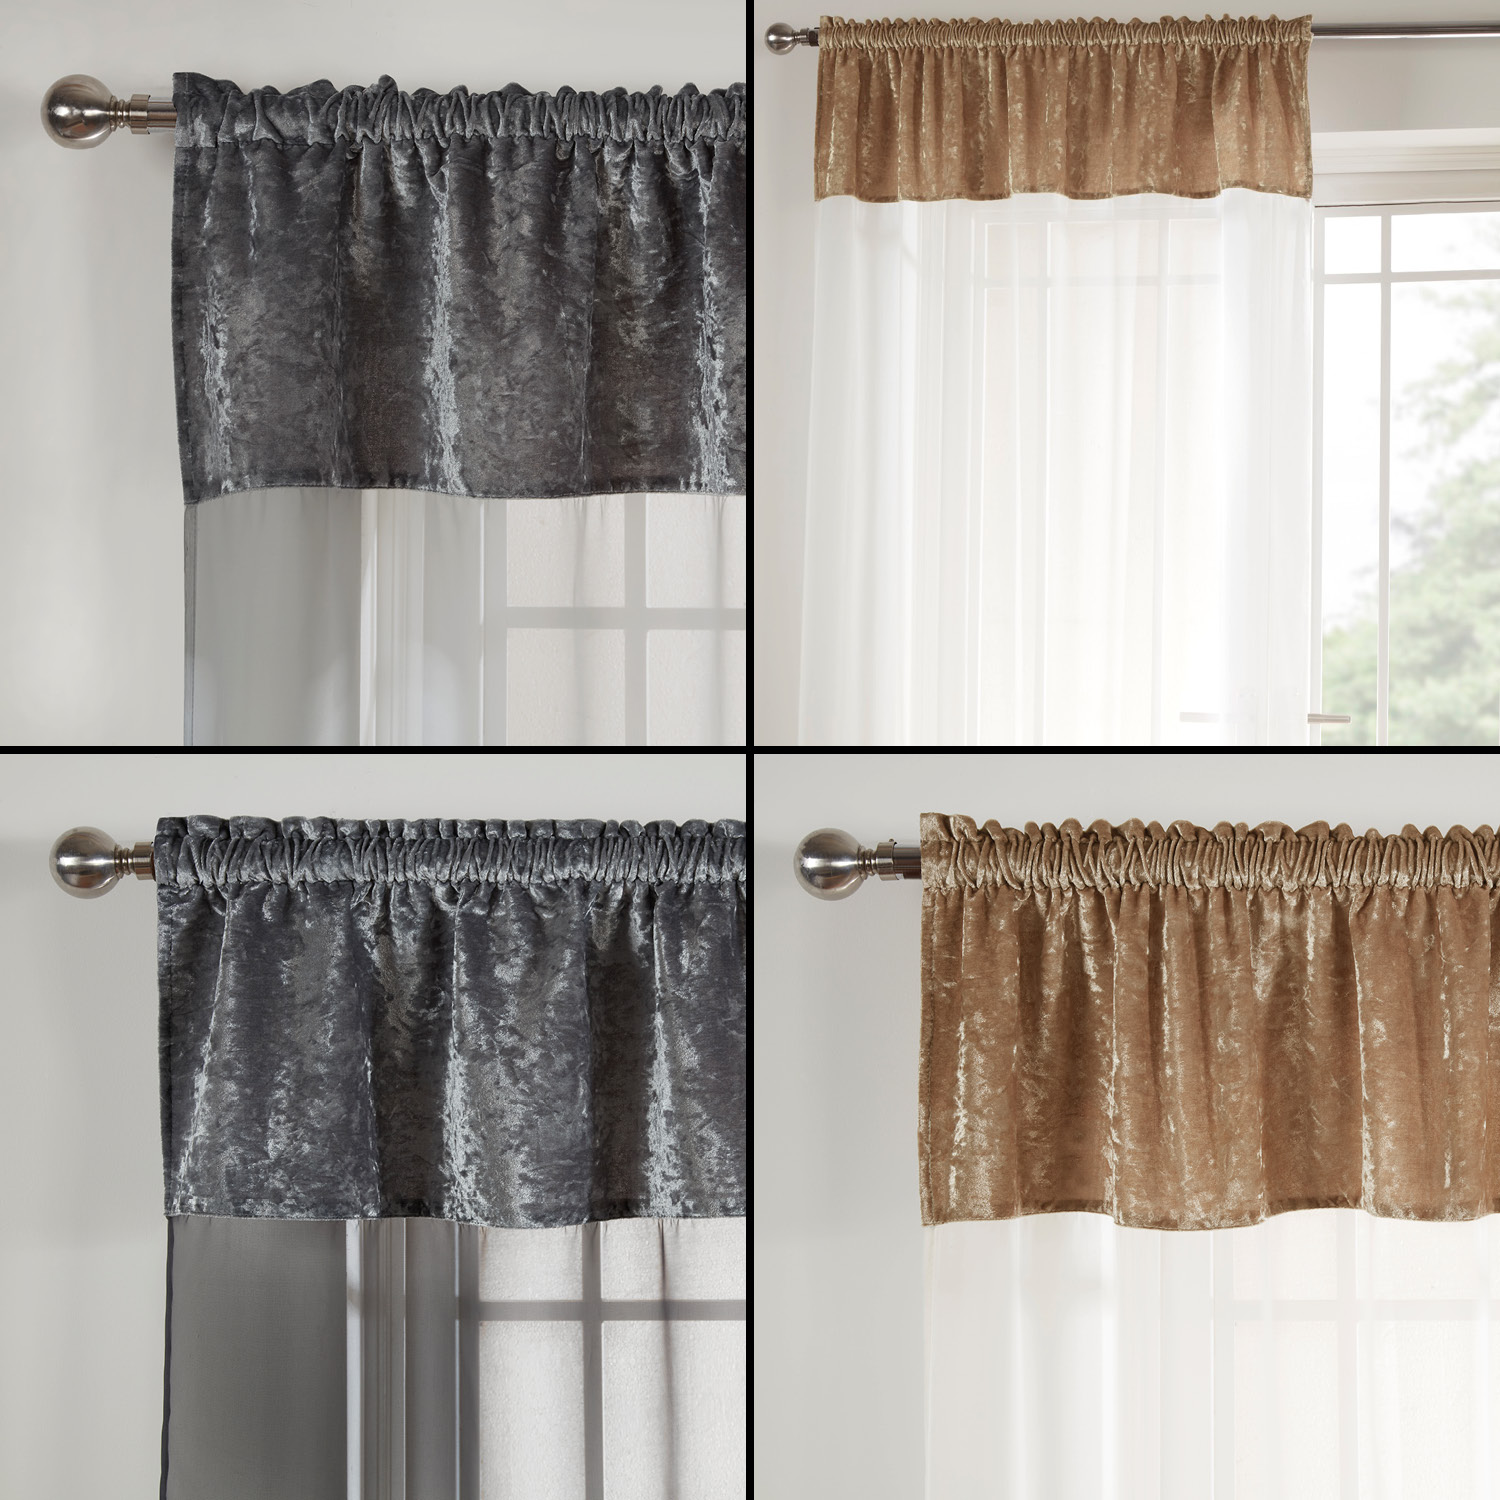 Crushed Velvet Voile Door Window Curtain Panel Black